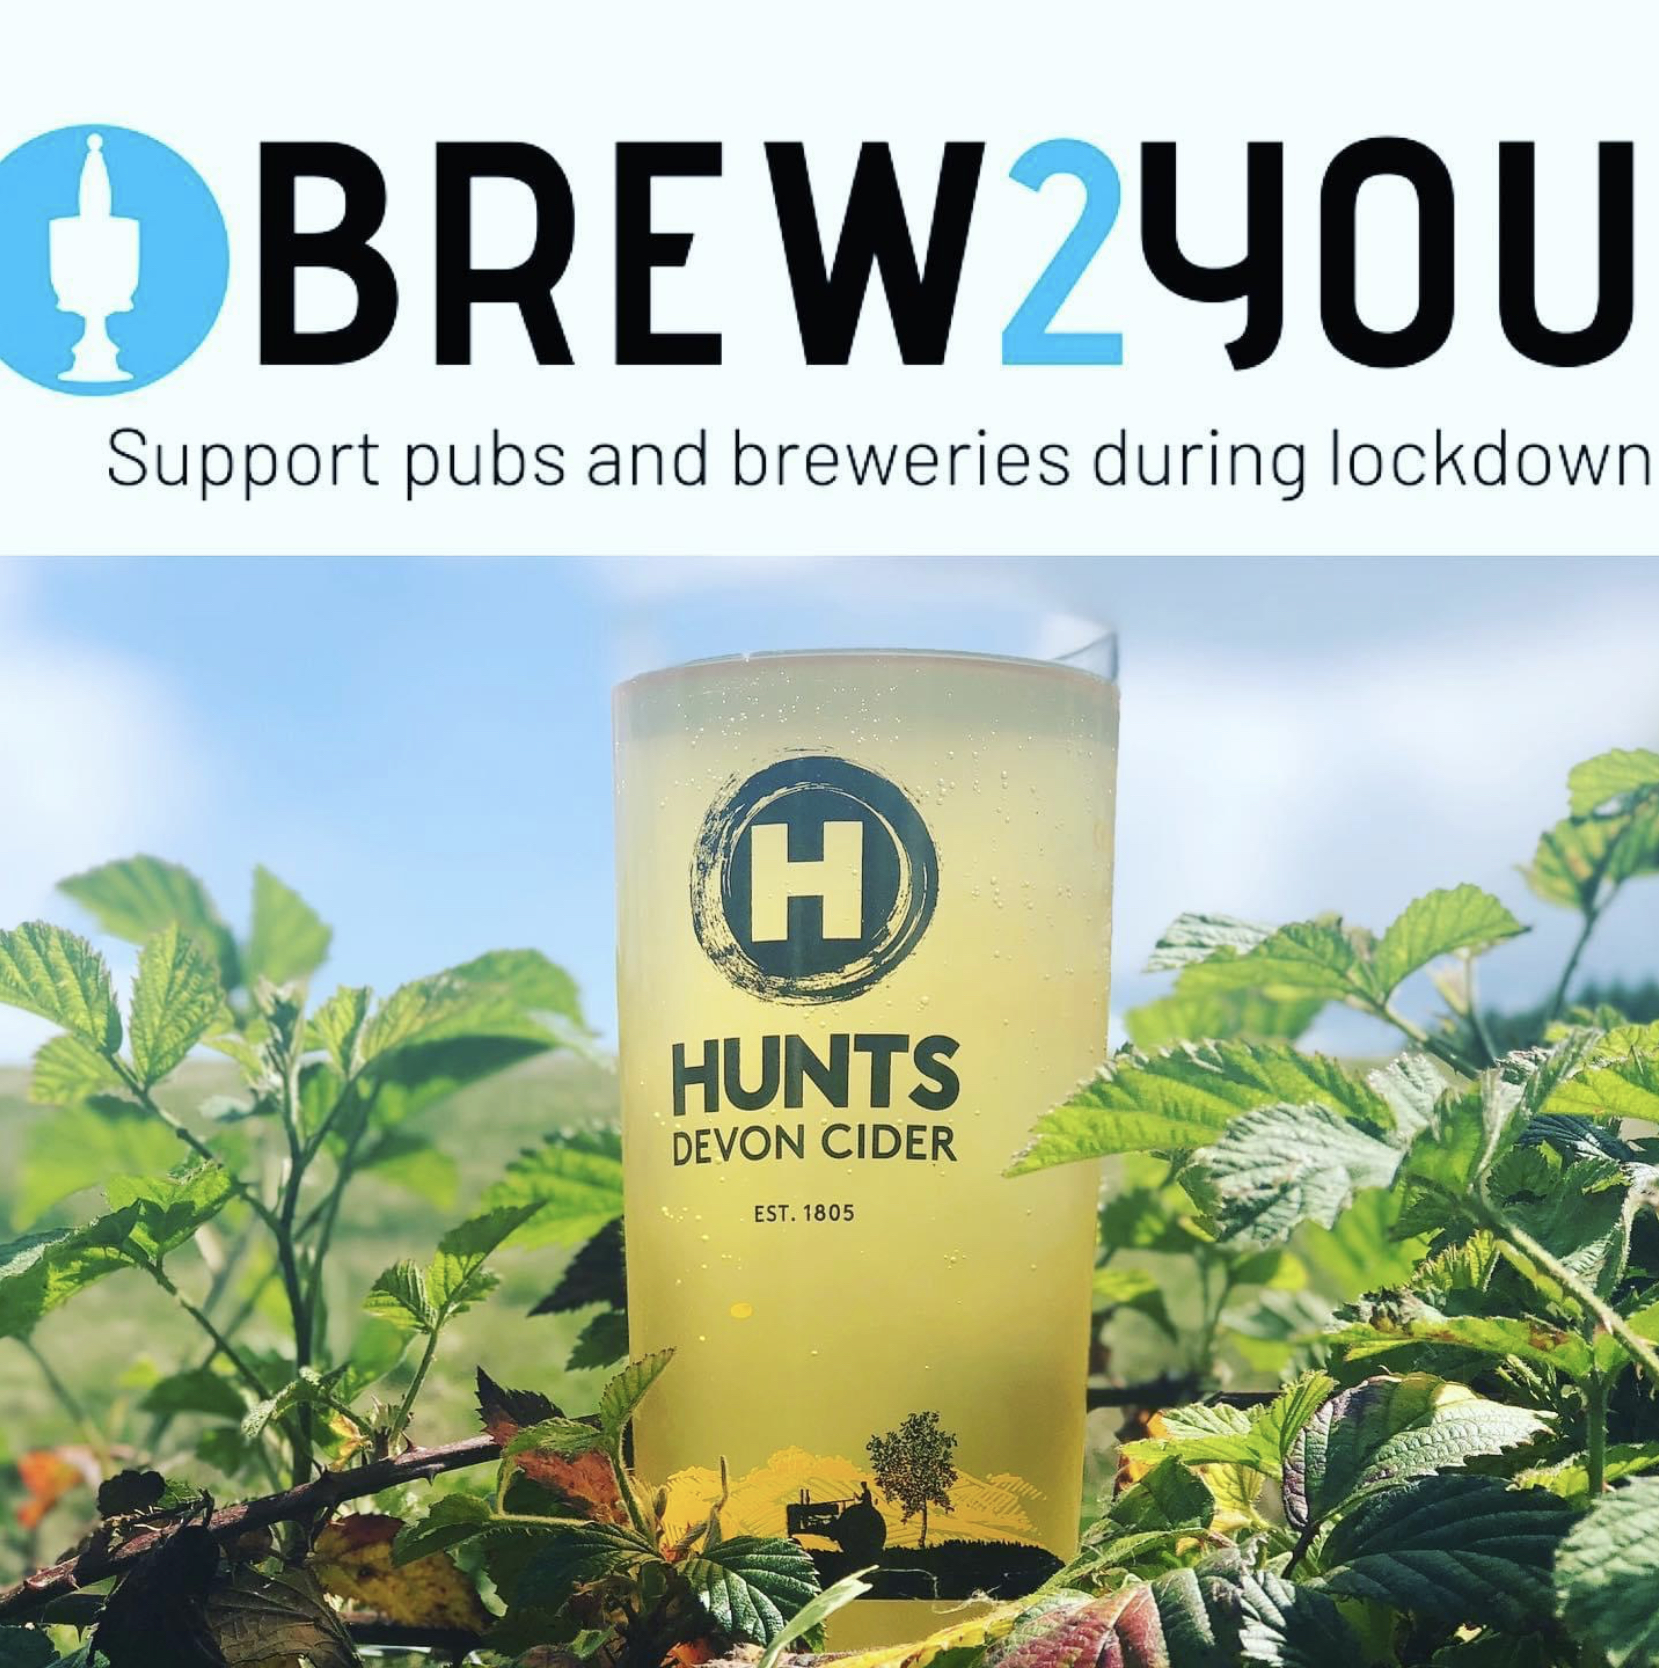 Brew 2 You